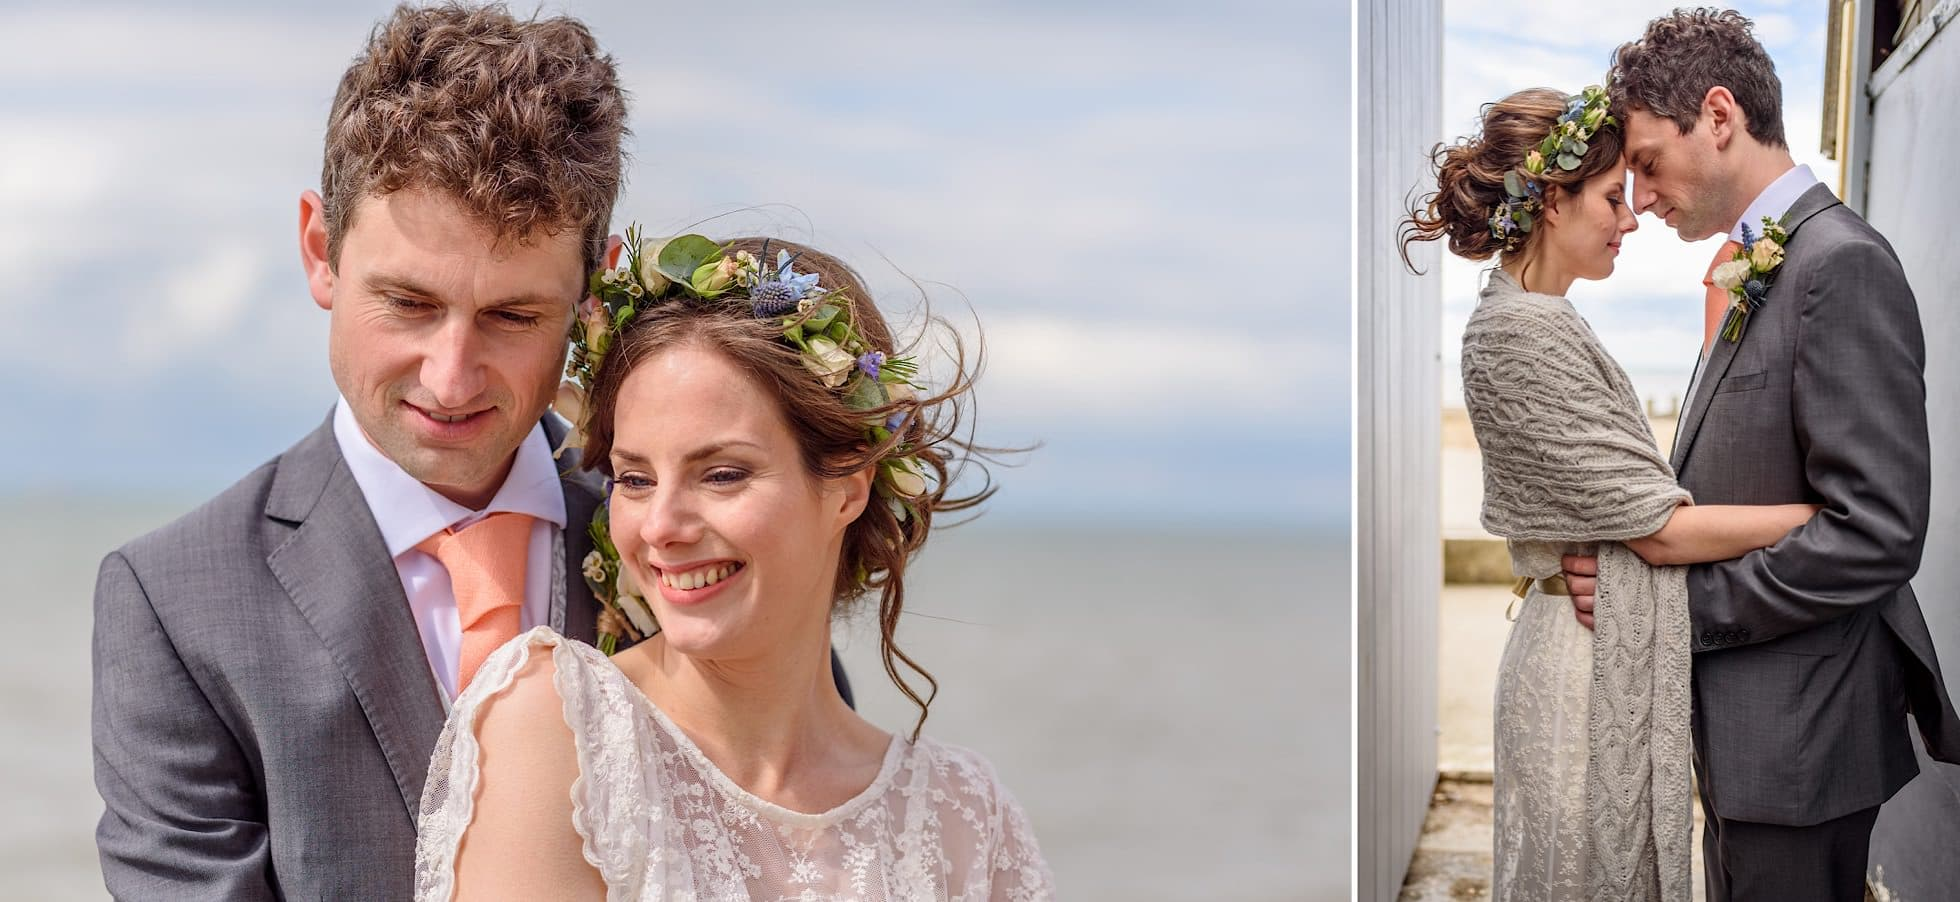 Wedding portraits on Whitstable beach